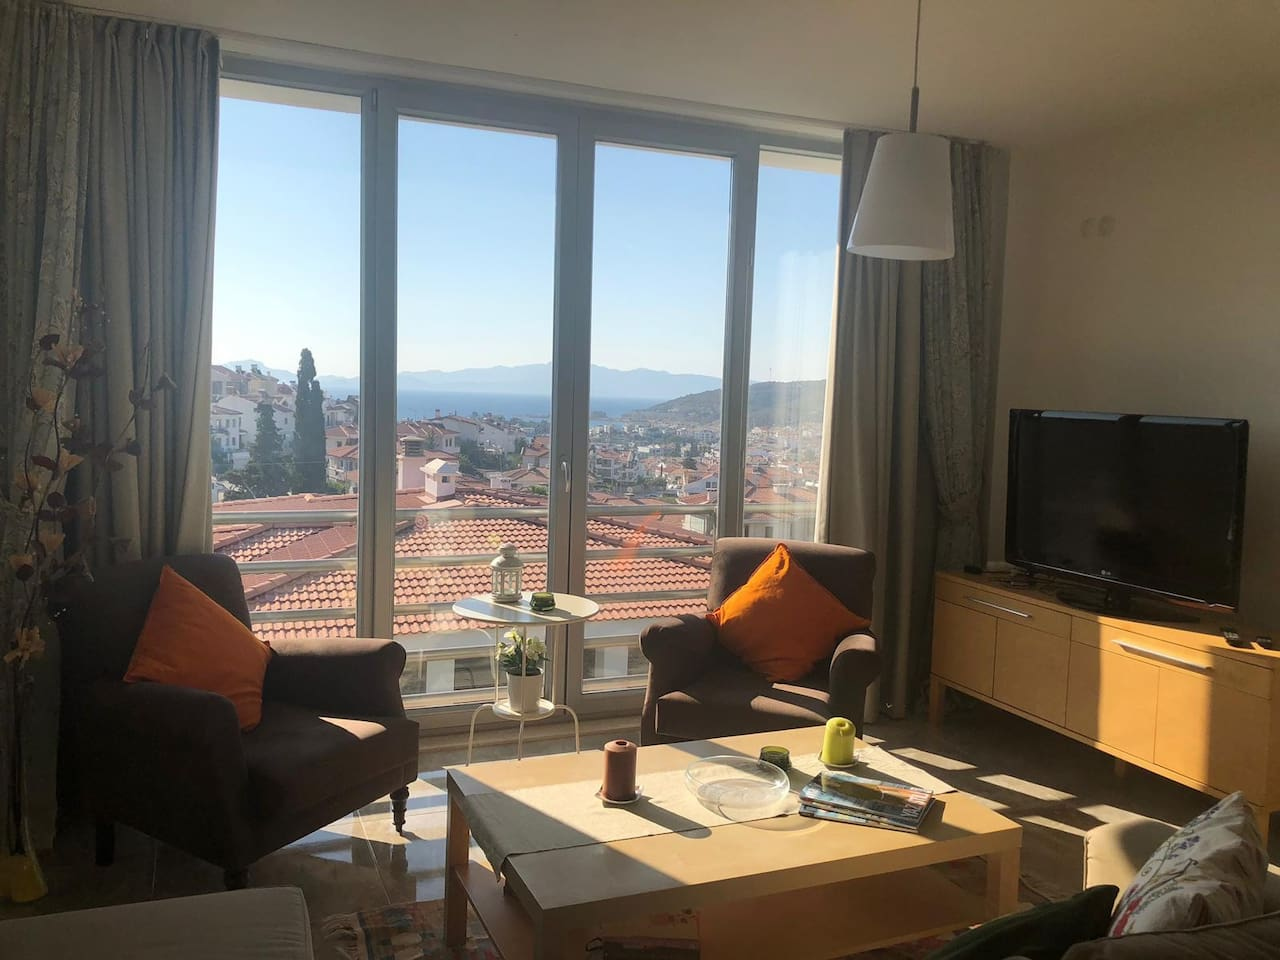 The spacious living room with the view of the Mediterran see